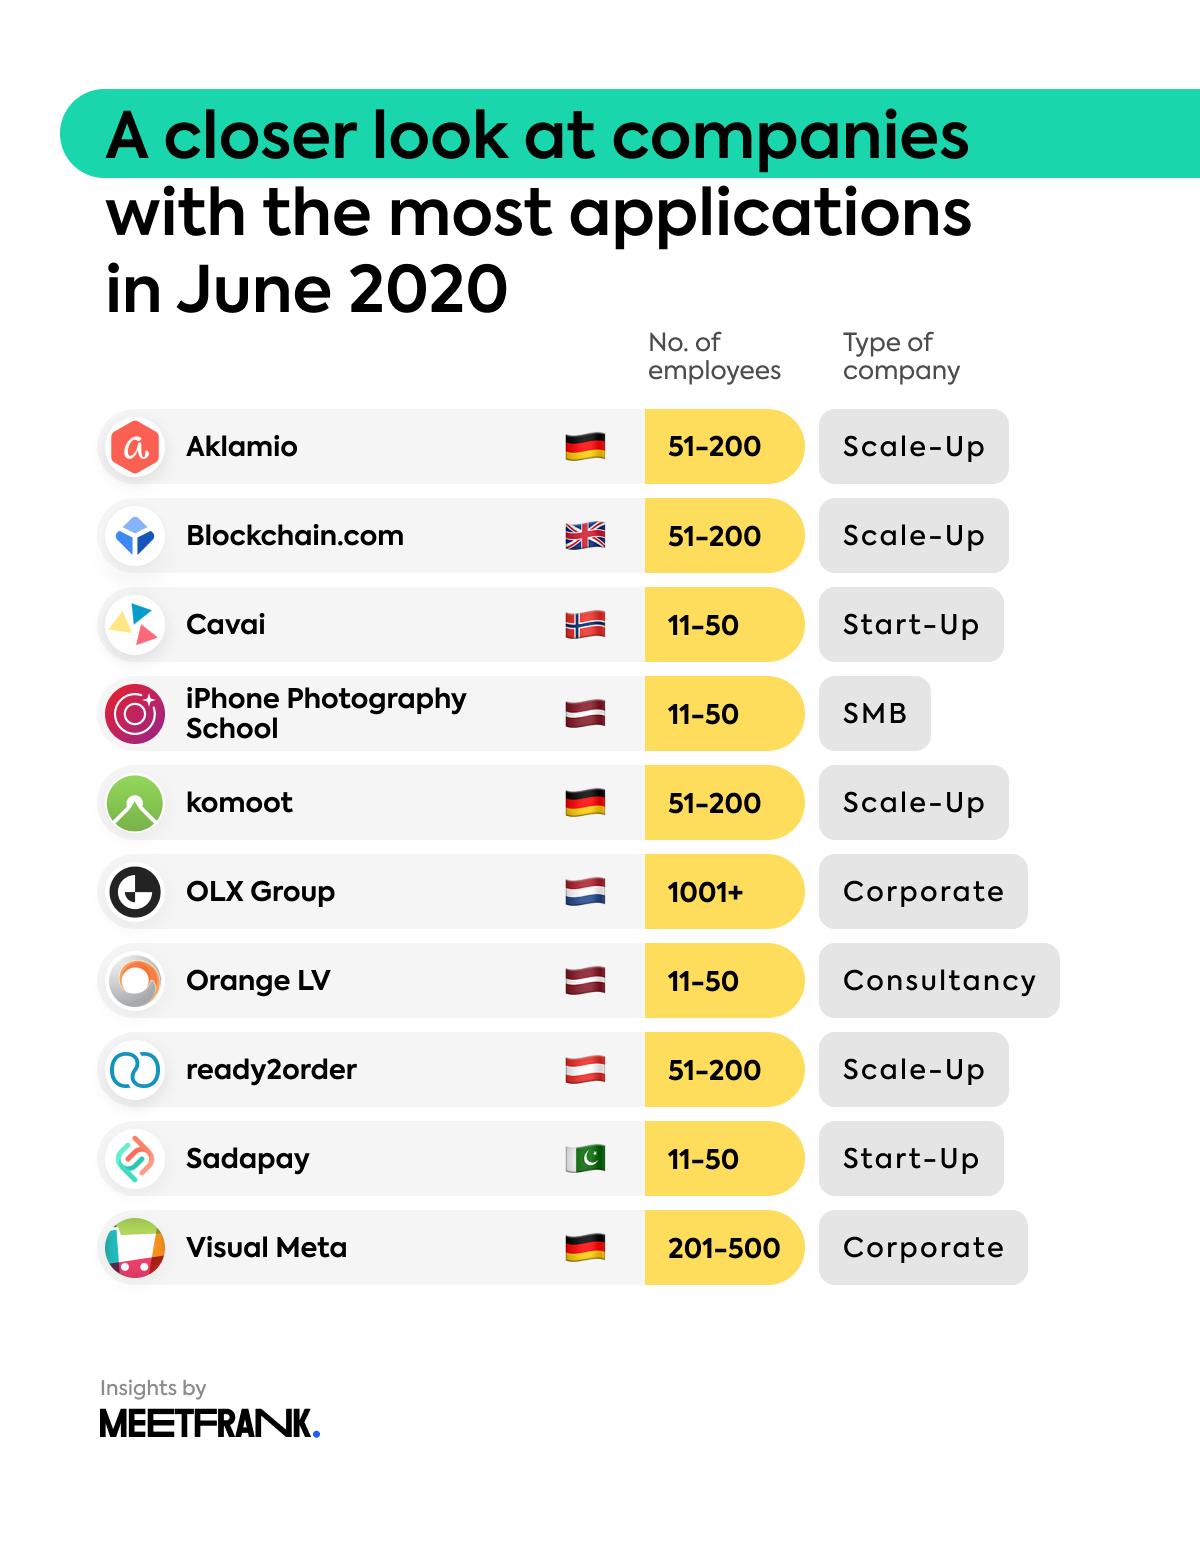 company size and type of the top 10 companies with the most applications on MeetFrank in June 2020